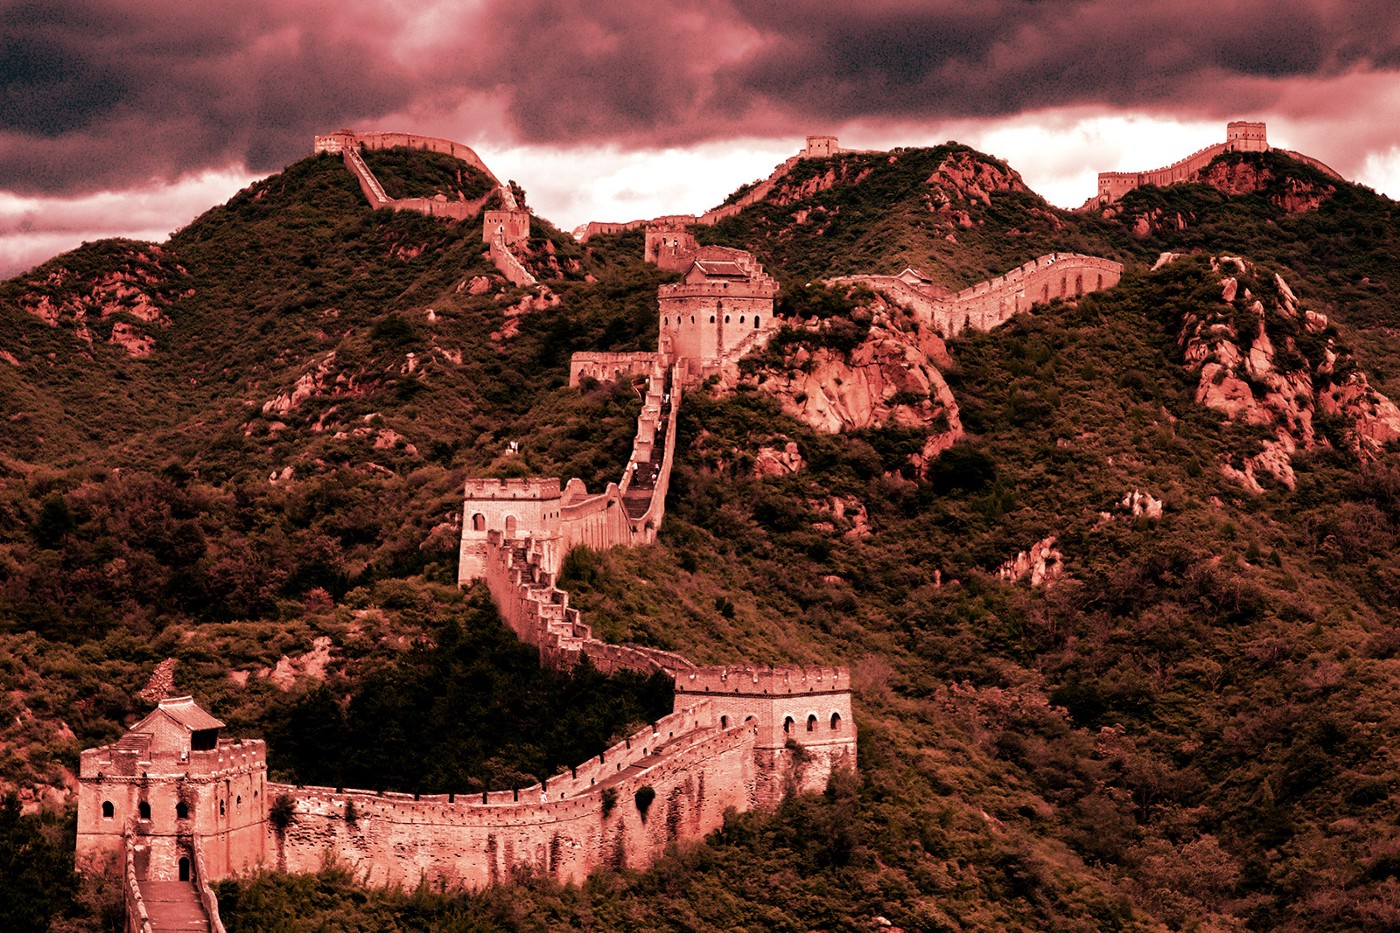 The Great Wall of China and surrounding hills overlaid with a red filter.